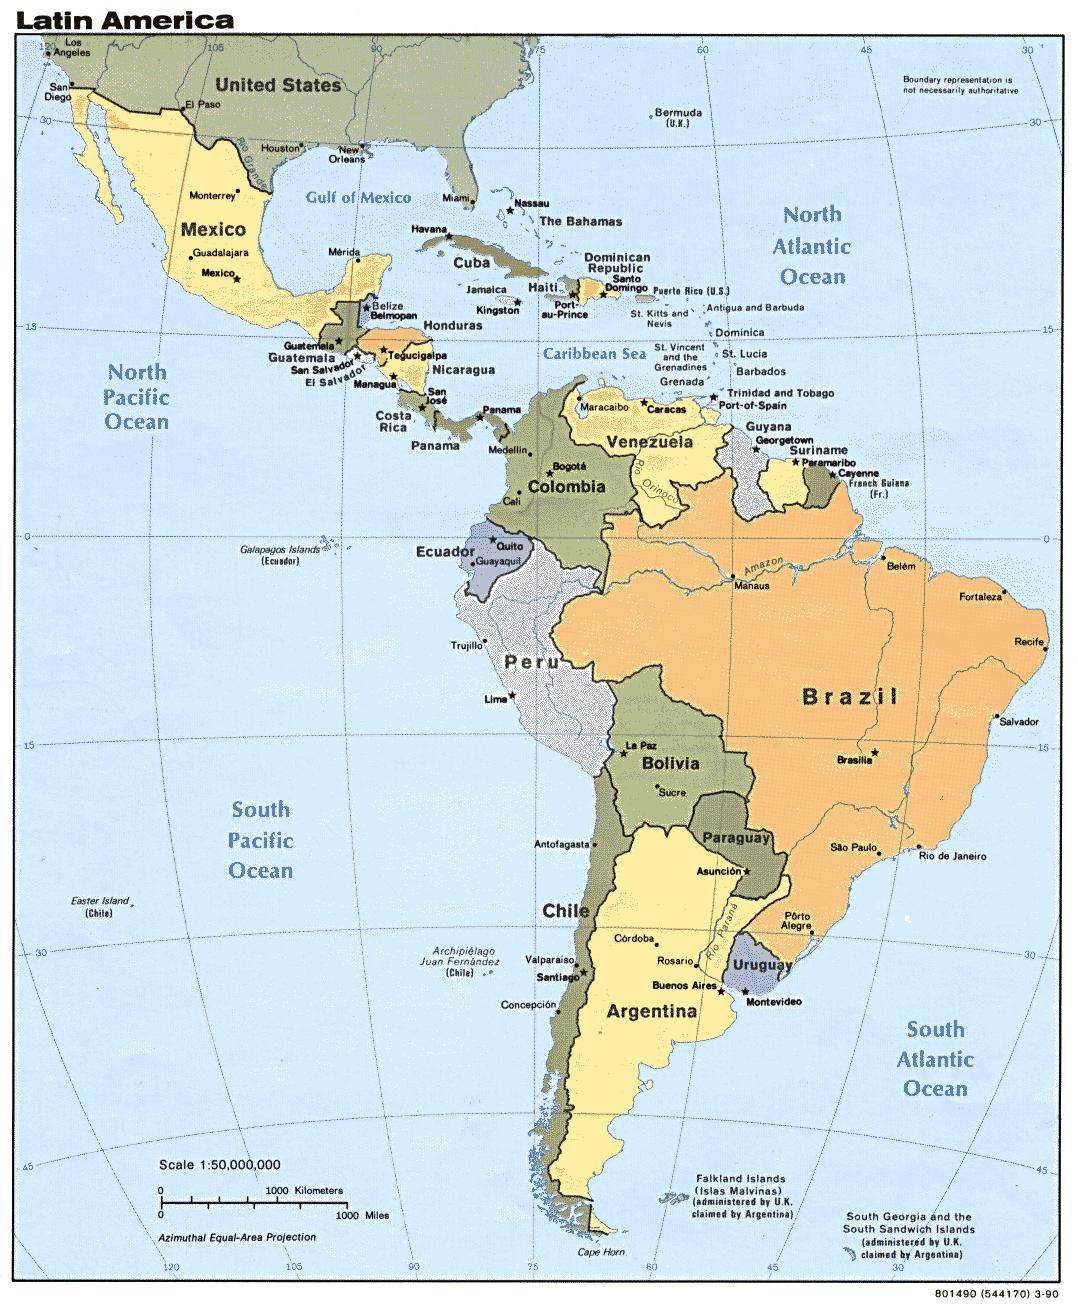 Online Maps: Map of Central and South America on caribbean map, andes mountains map, middle america map, north america map, western europe map, central and south american countries, central and east africa map, central and southern europe map, central and southwest asia map, orinoco river map, amazon river map, latin america map, central america vegetation map, central plains south america, belize map, asia pacific map, south central us map, panama canal map, west indies and central america map, llanos map,